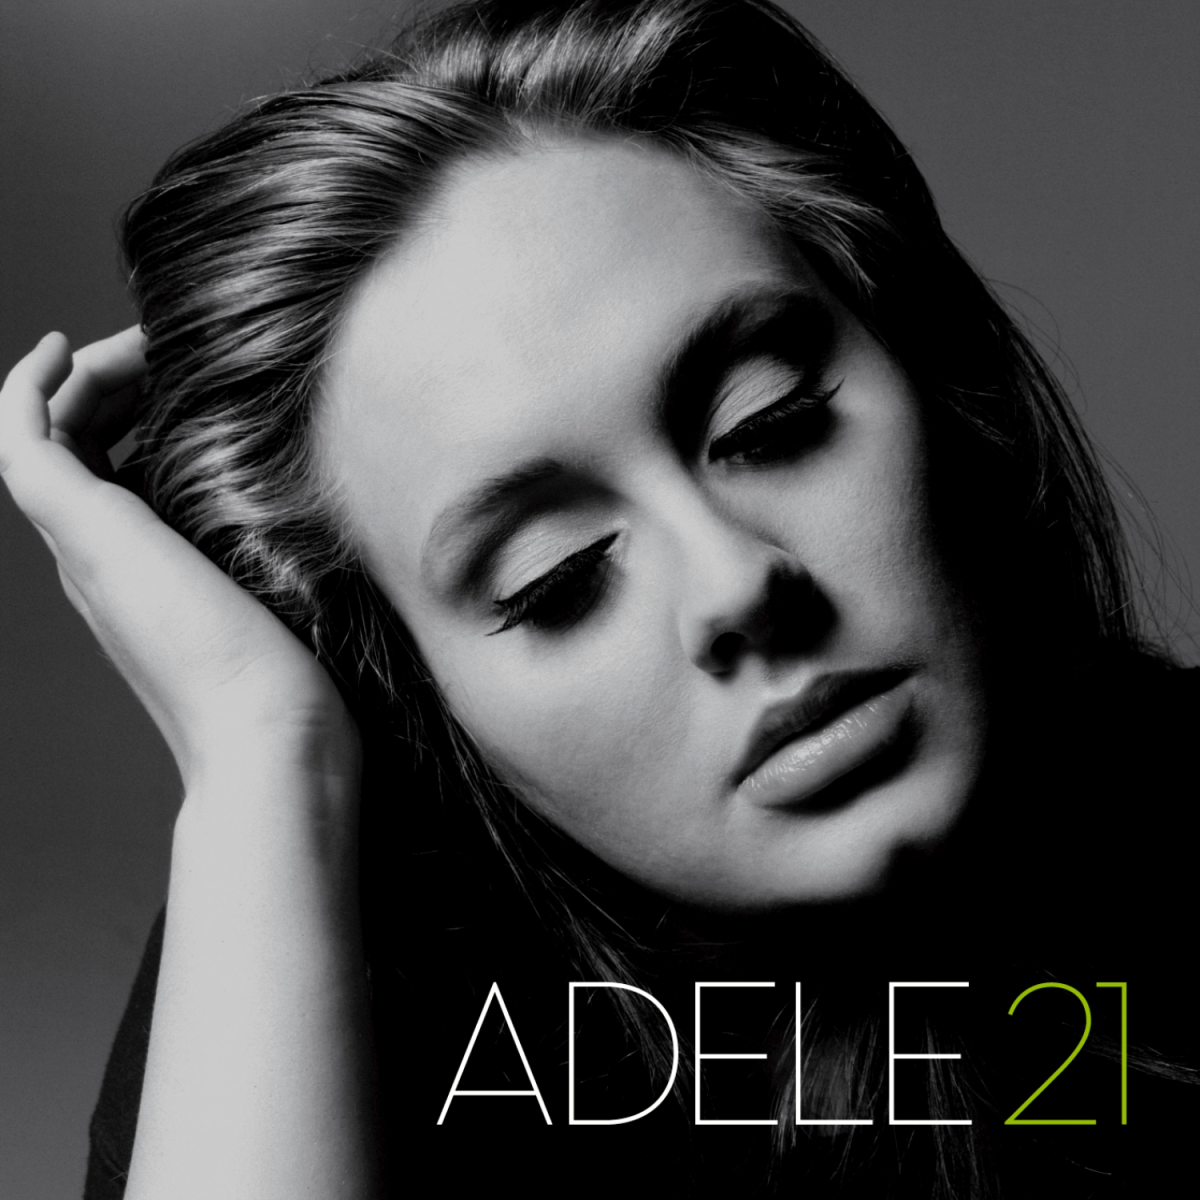 Adele 21 Cork Ireland Vinyl LP Record Shop